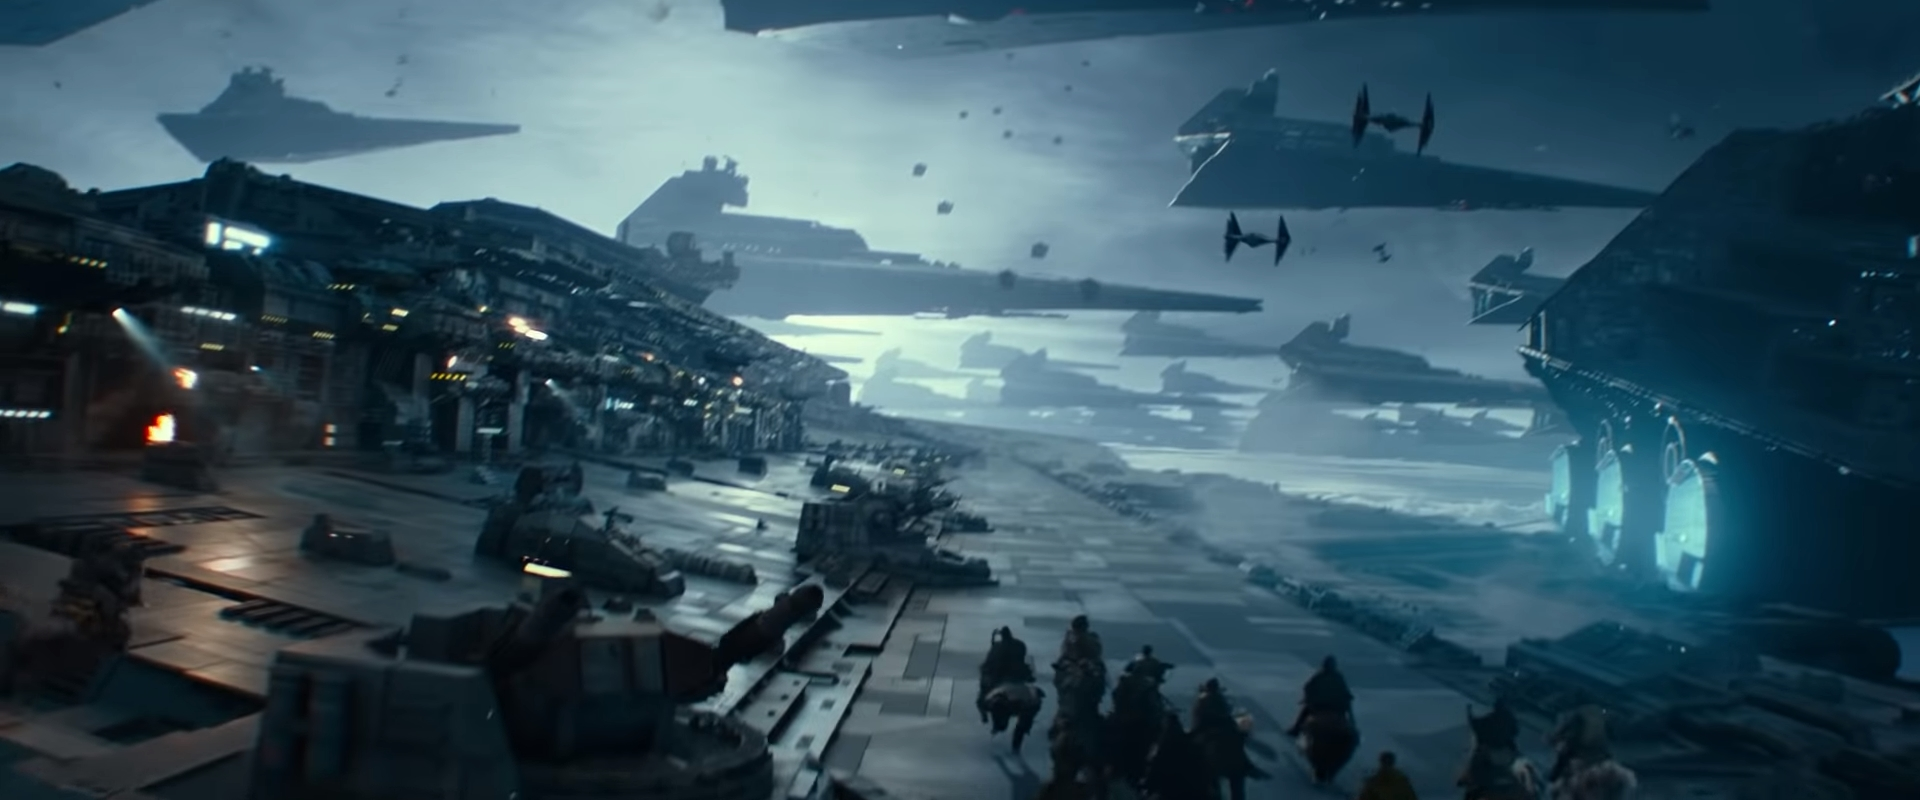 Let S Hyper Analyse The Final Trailer For Star Wars The Rise Of Skywalker